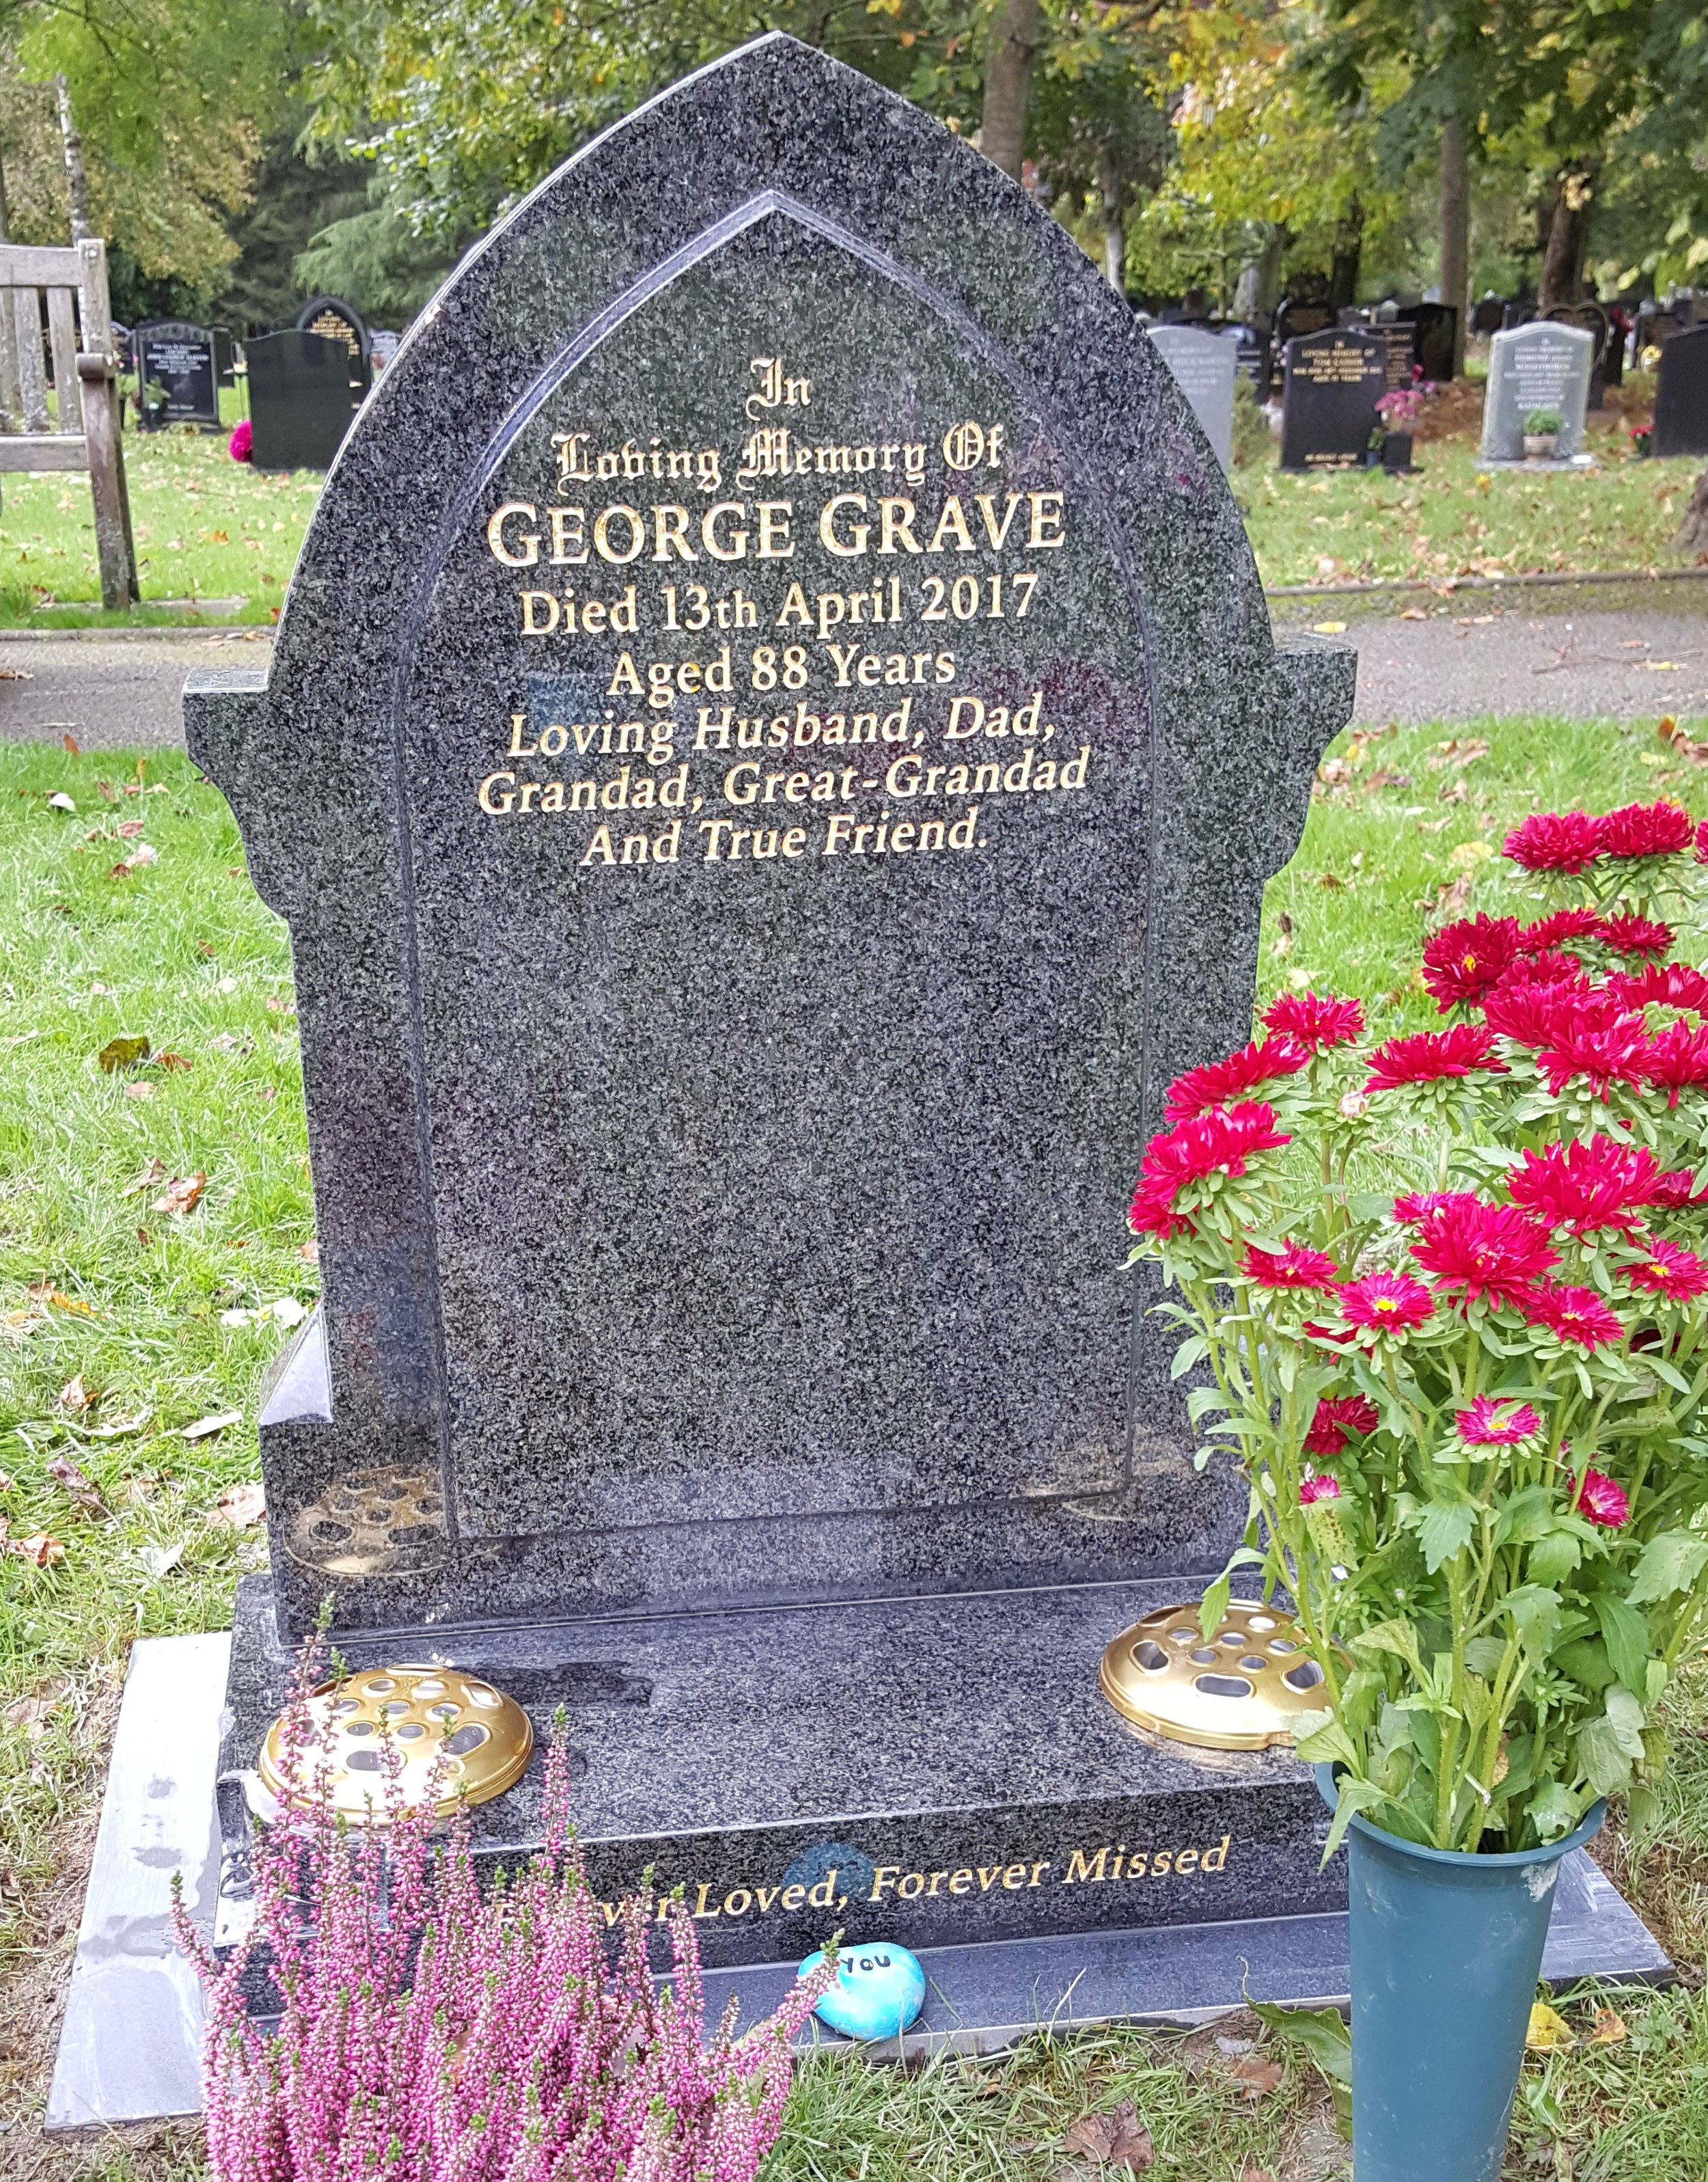 Grey granite gothic shaped headstone